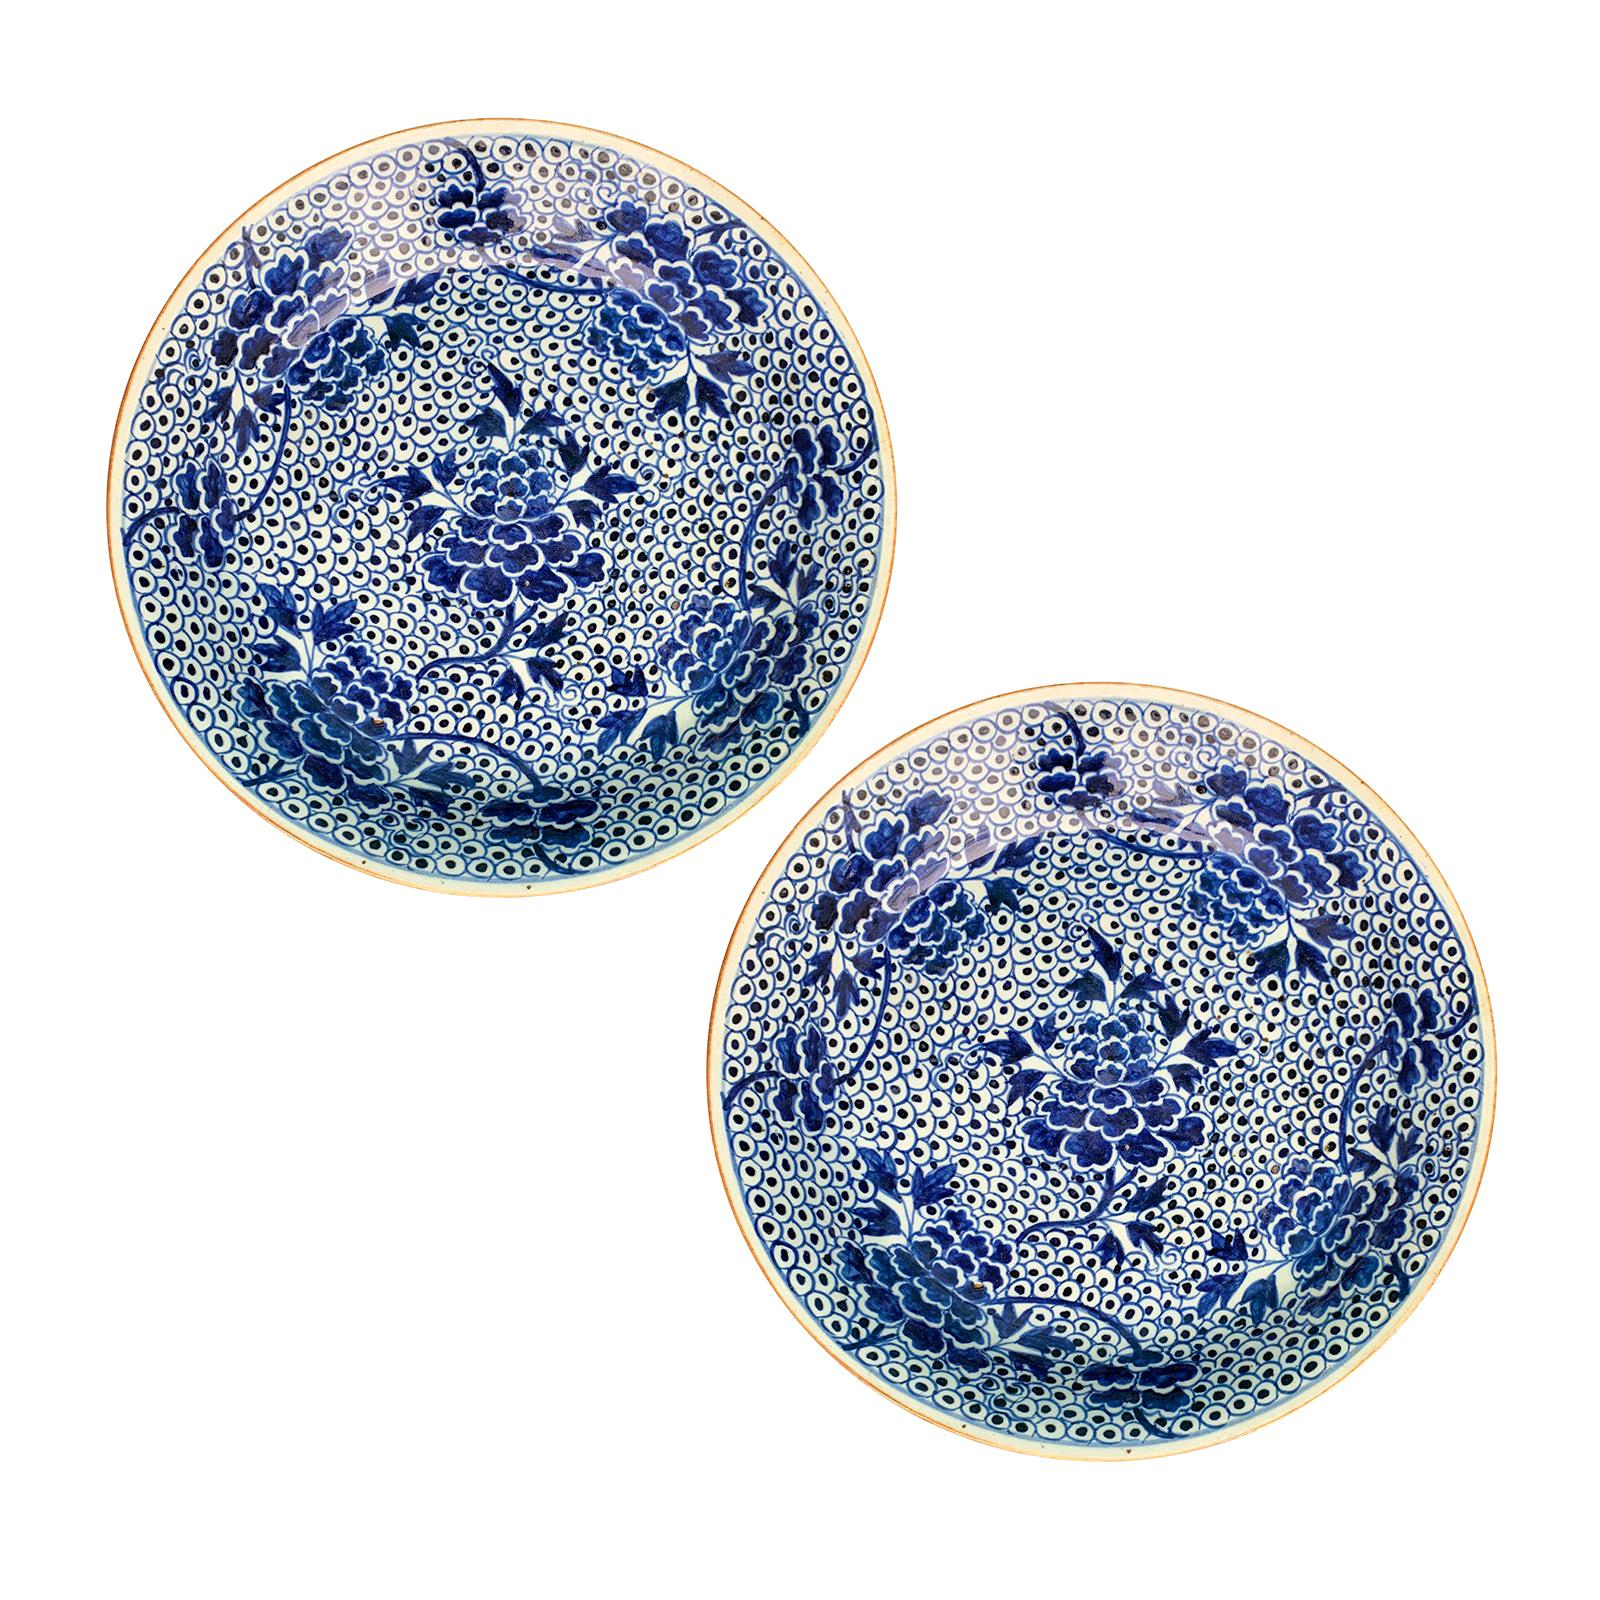 Pair of 18th-19th Century Chinese Blue and White Porcelain Chargers, Unmarked